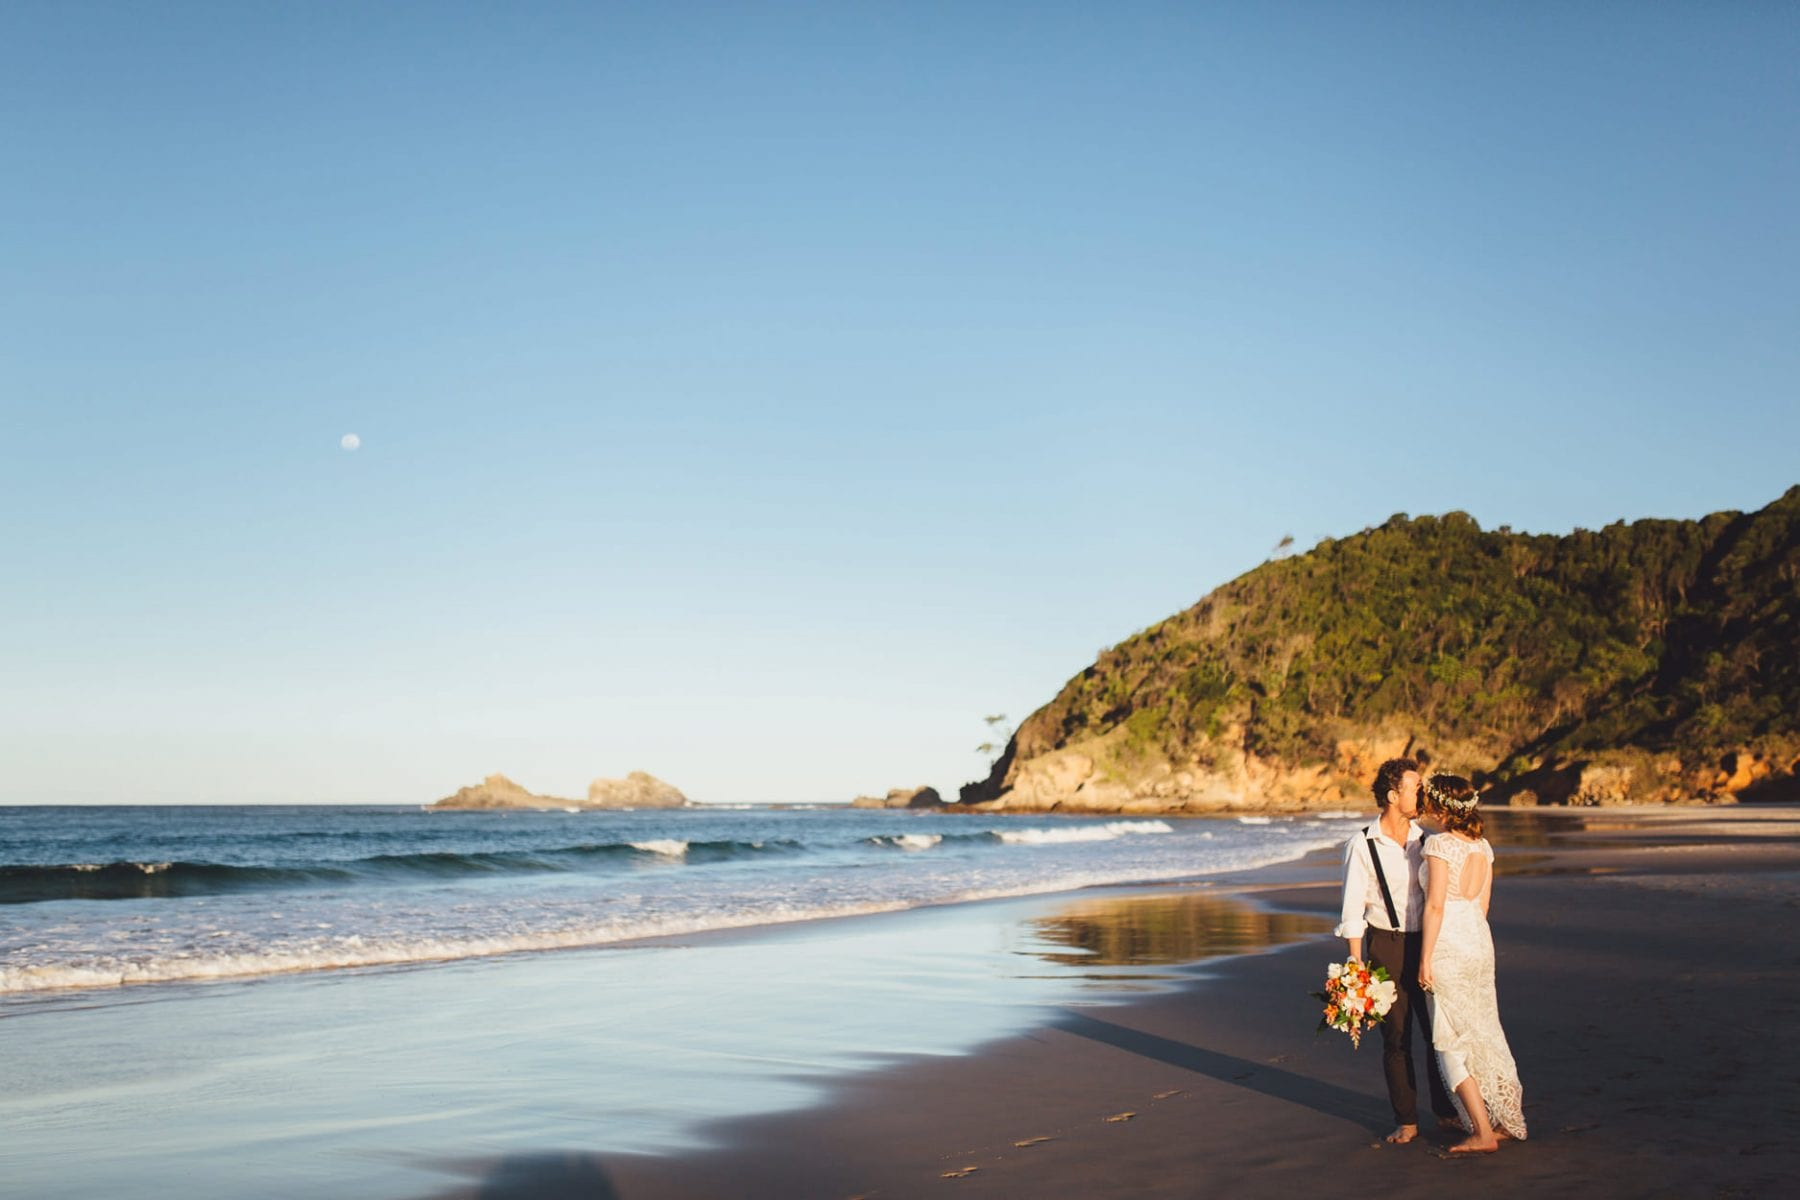 beach wedding photographer northern beaches sydney